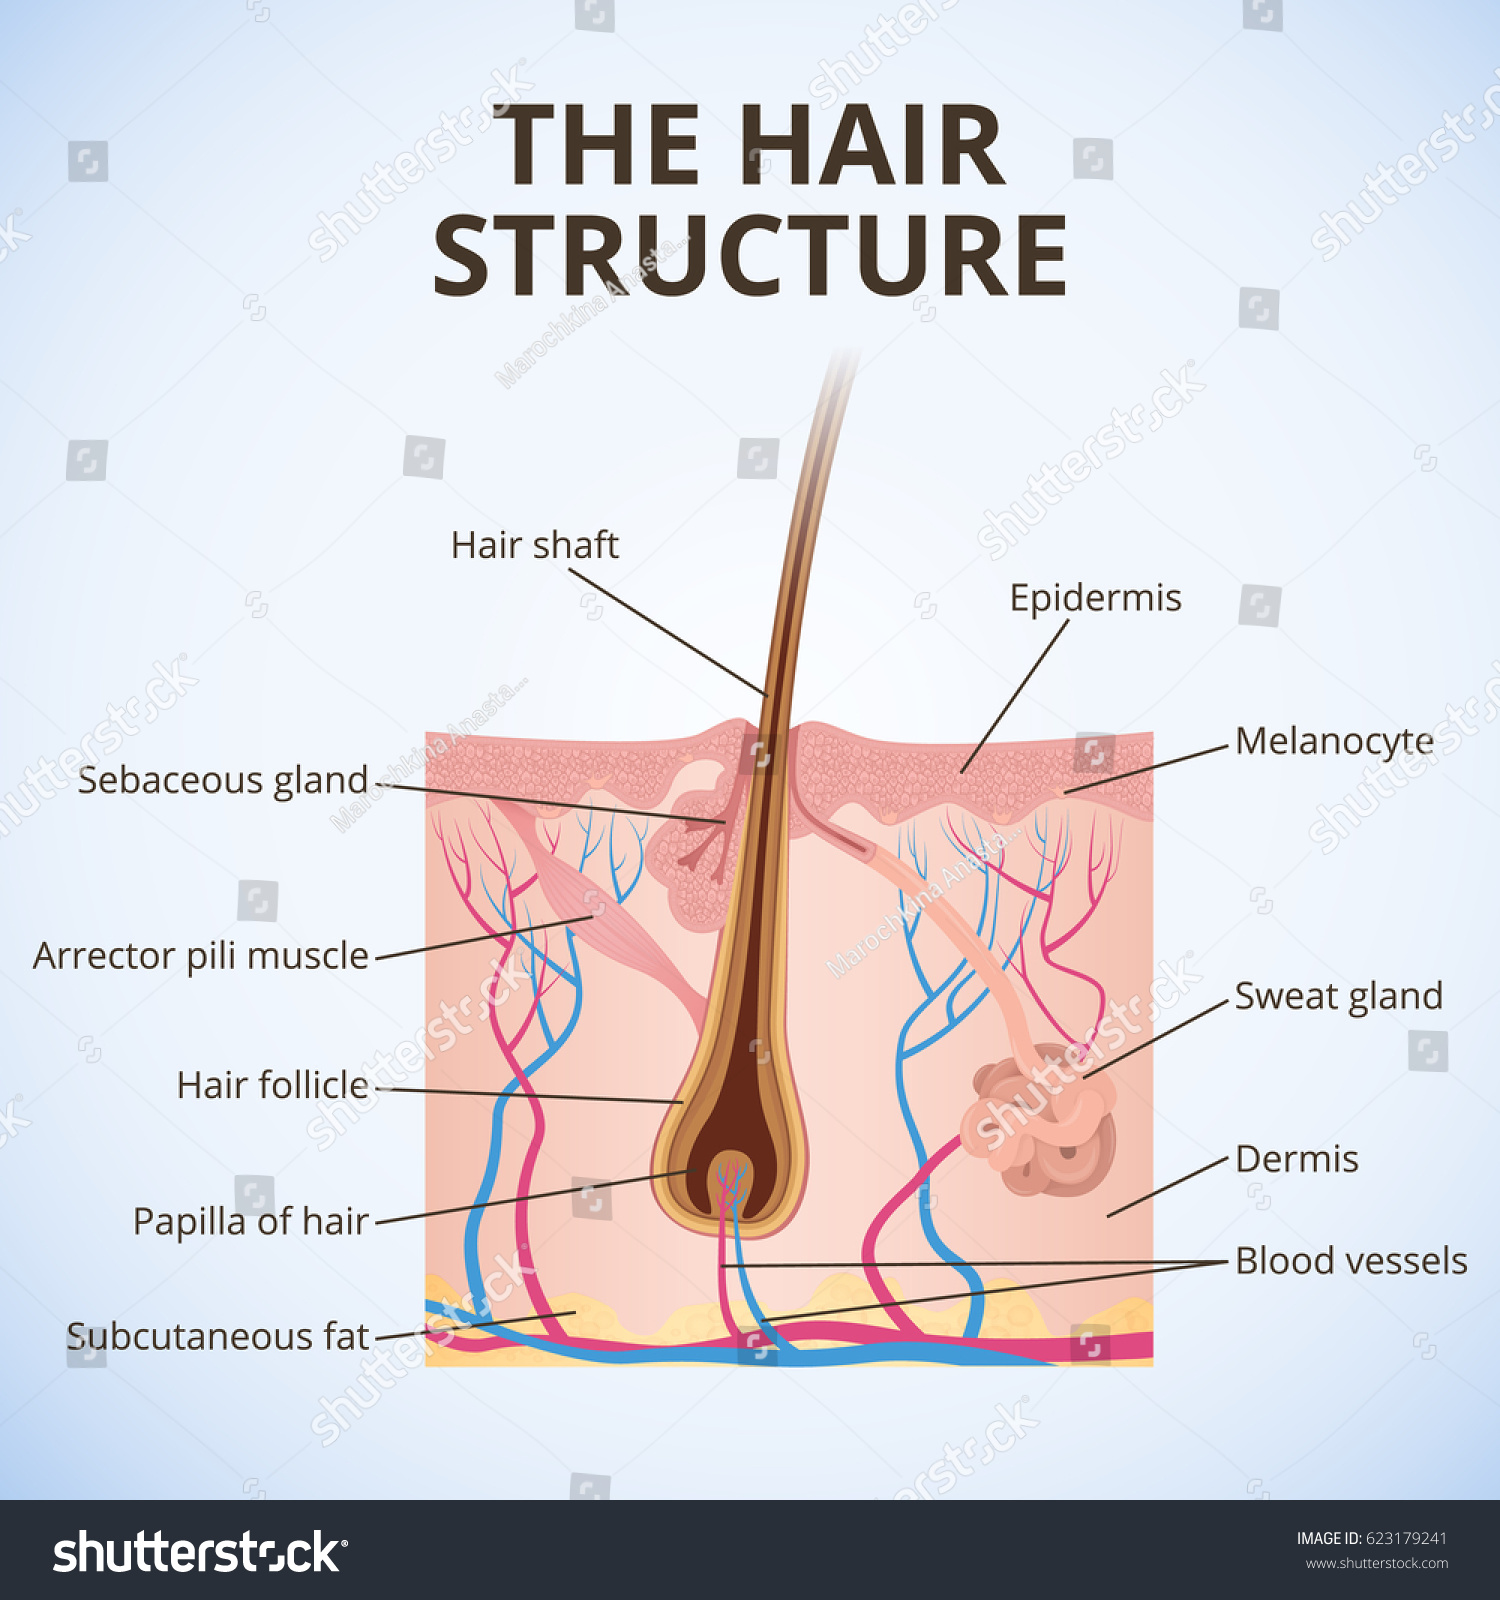 Structure Hair Illustration Structure Hair Hair Stock Vector ...